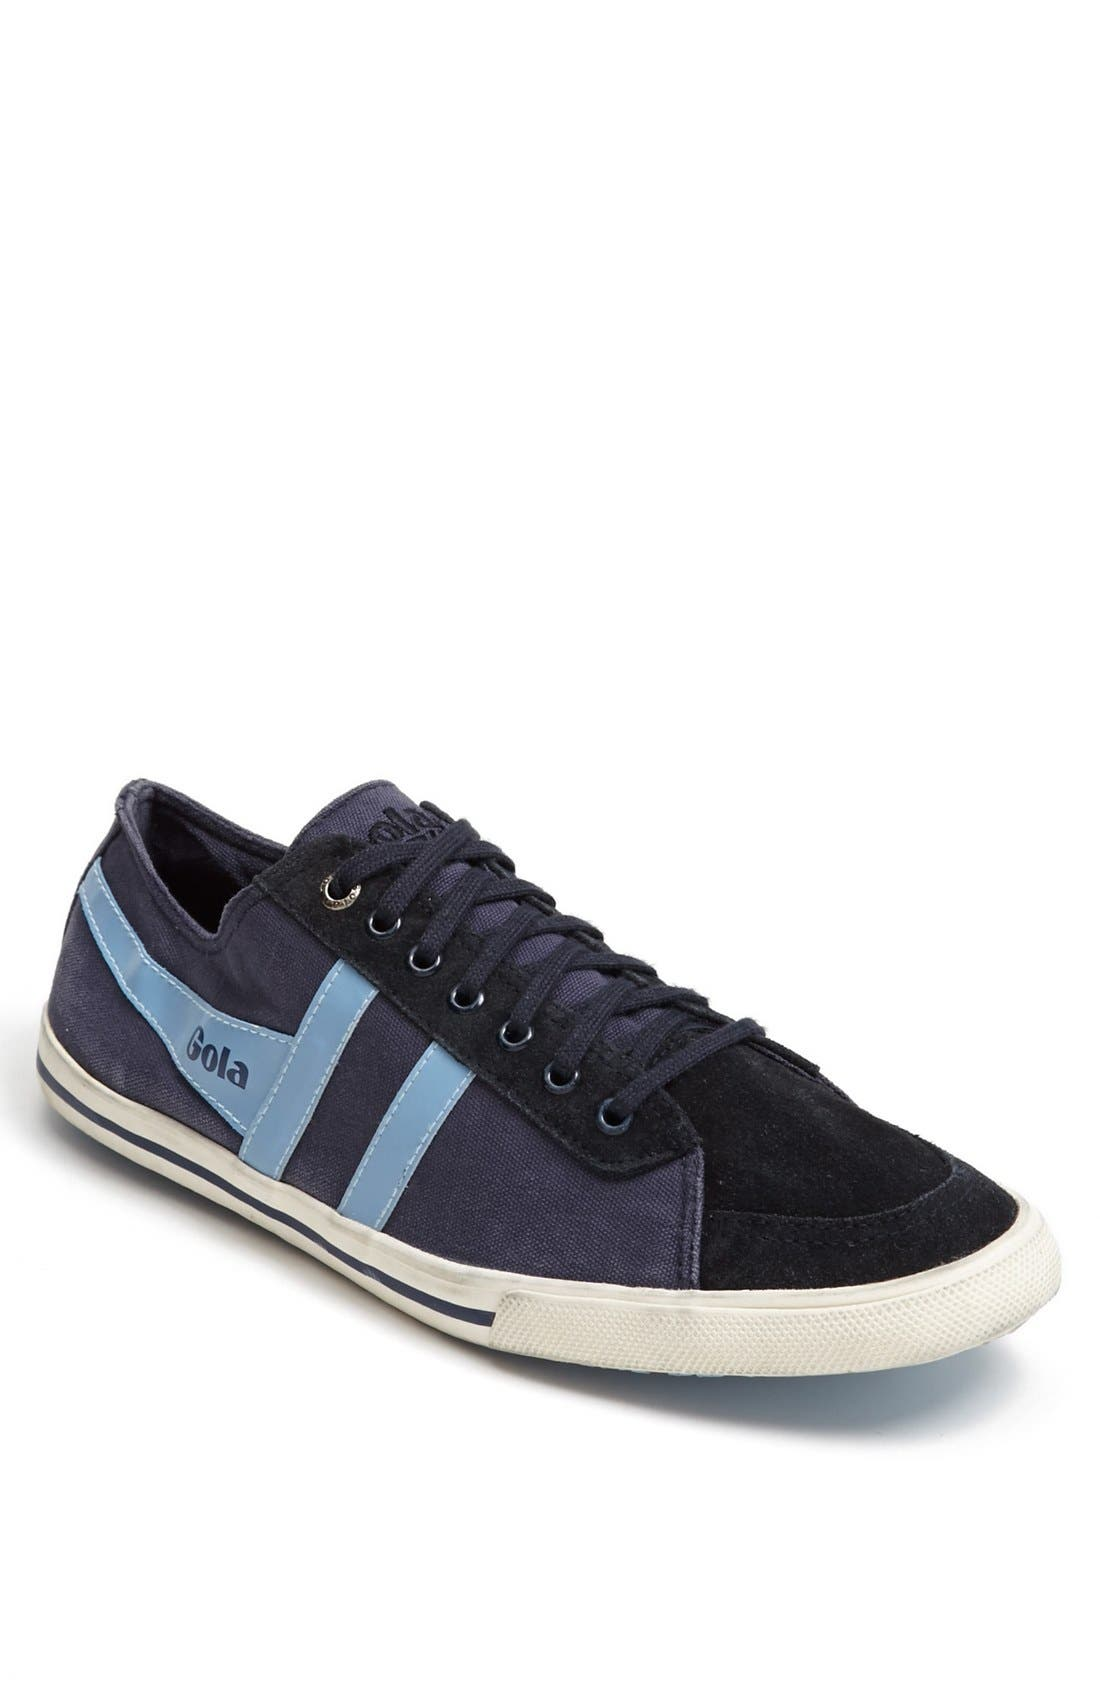 Alternate Image 1 Selected - Gola 'Quota' Sneaker (Men)